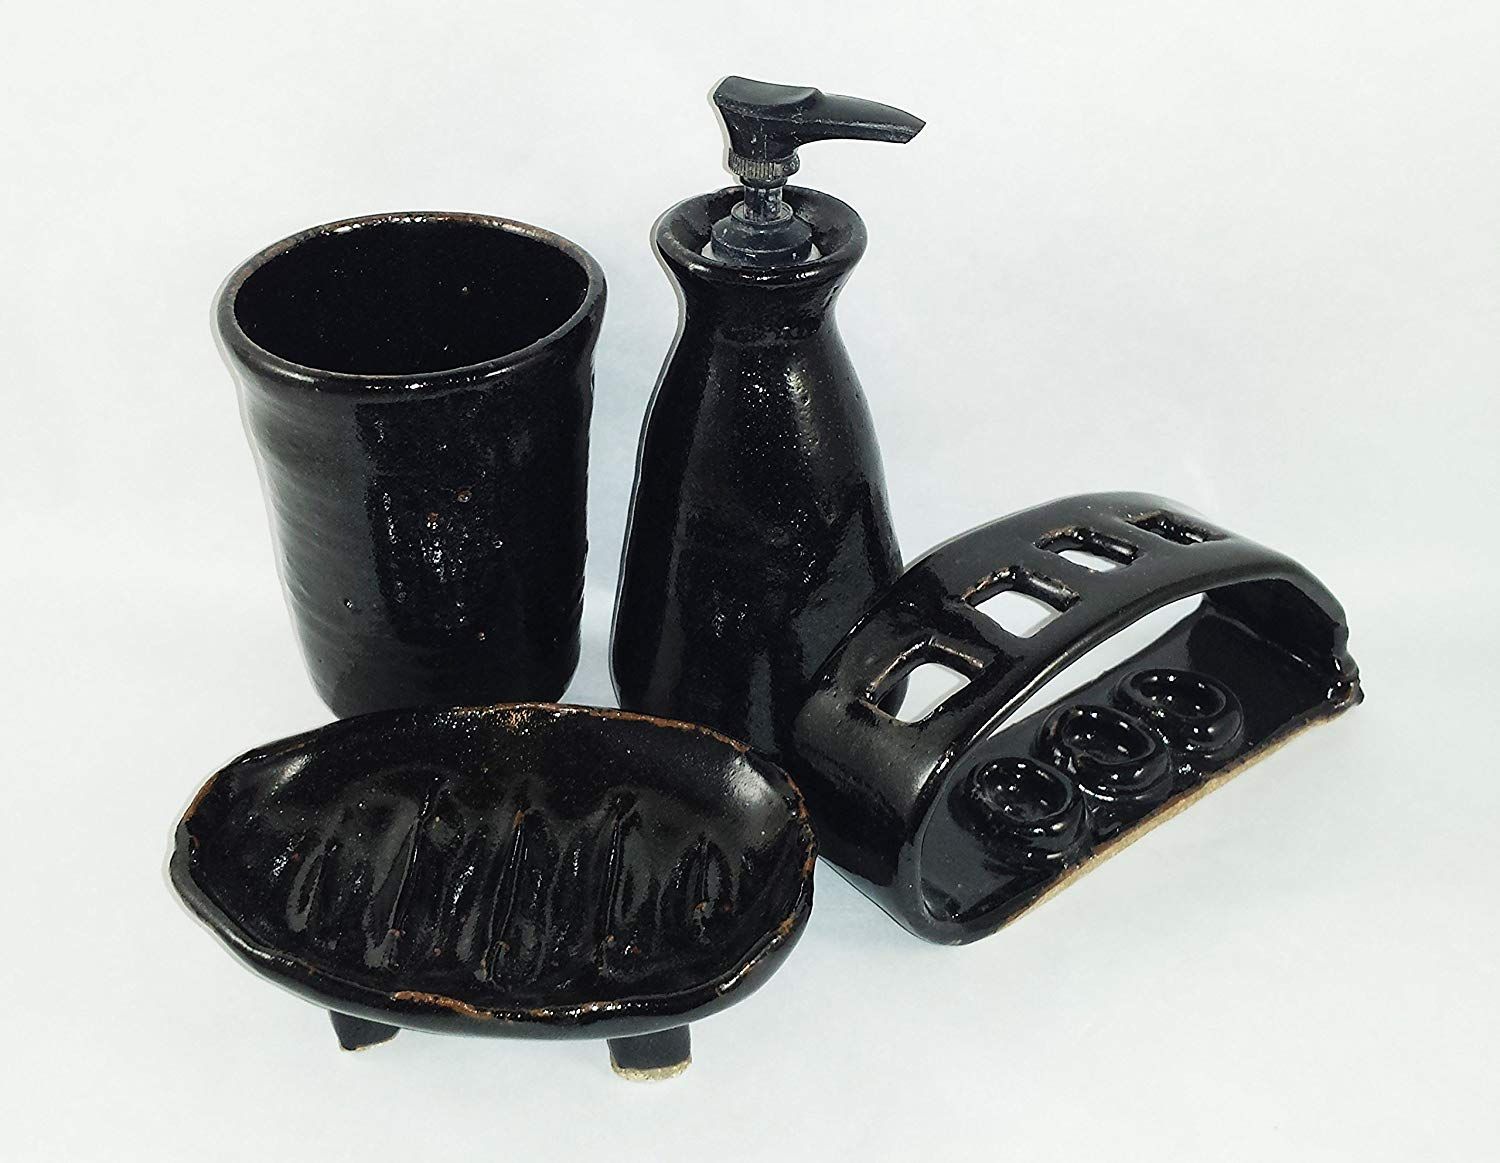 Aunt Chris' Pottery - Hand Made Clay - 4 Piece Bathroom Set - Black Color Glazed - Cup, Lotion Pump, Soap Dish & Toothbrush Holder - Primitive Style - Very Unique - Only Available Here On Amazon!